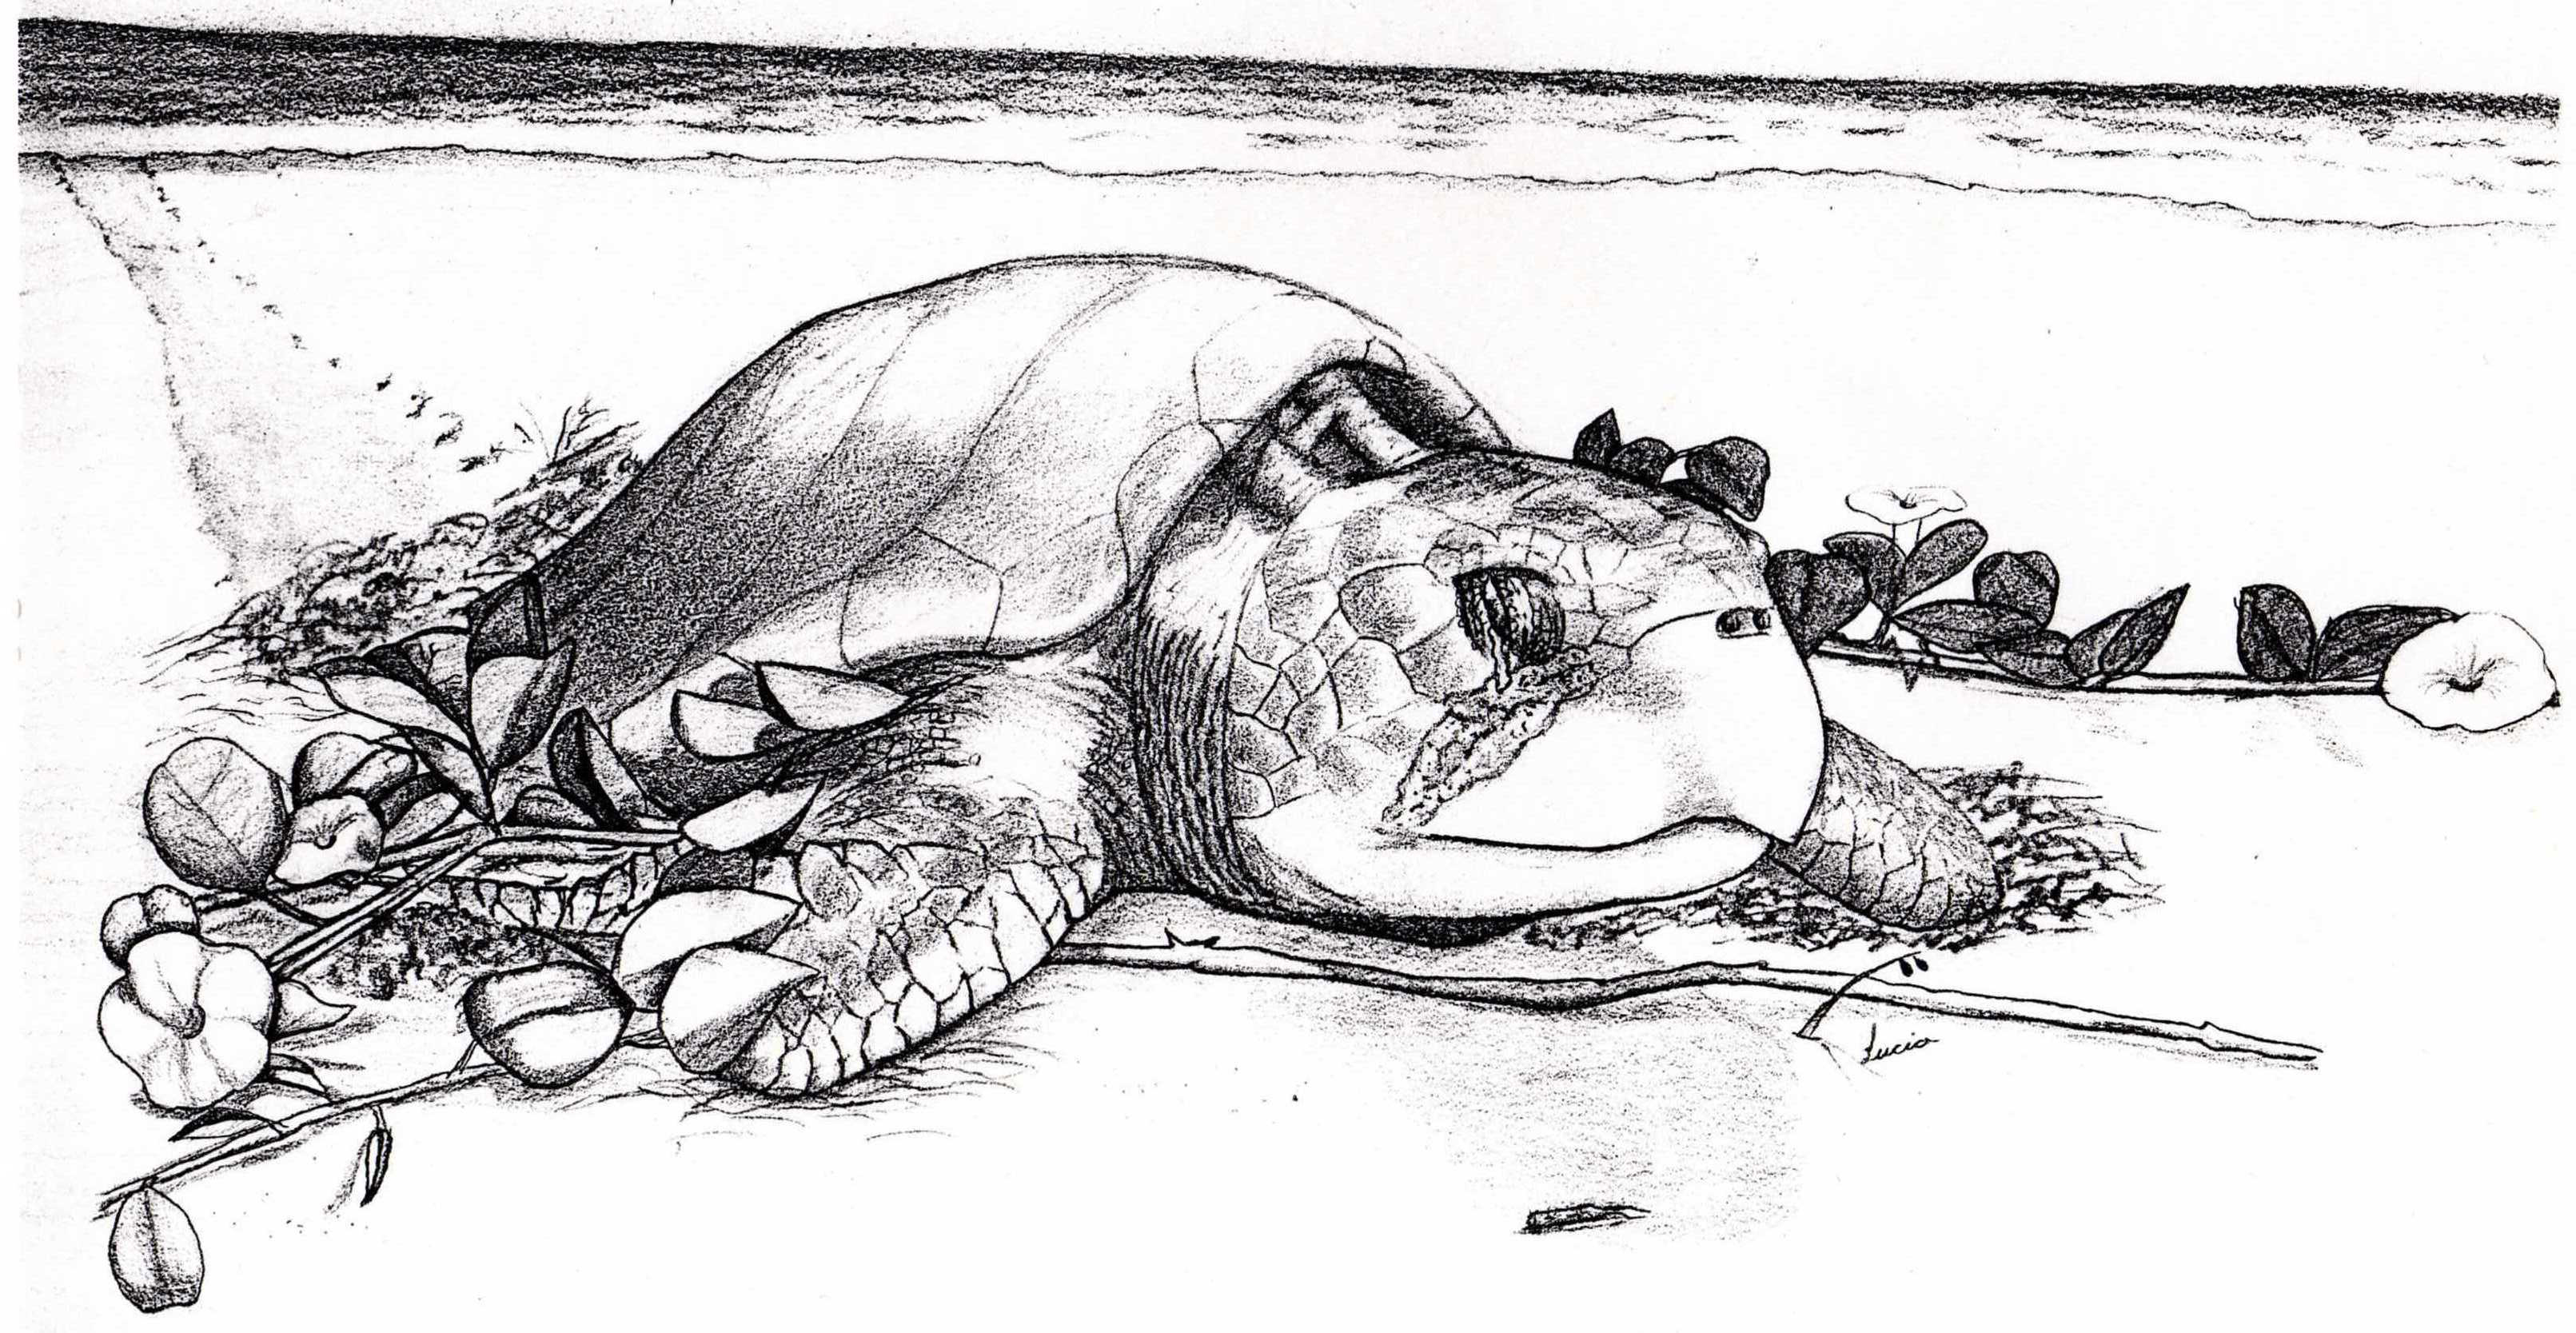 Original sea turtle artwork by Lucia Guillen